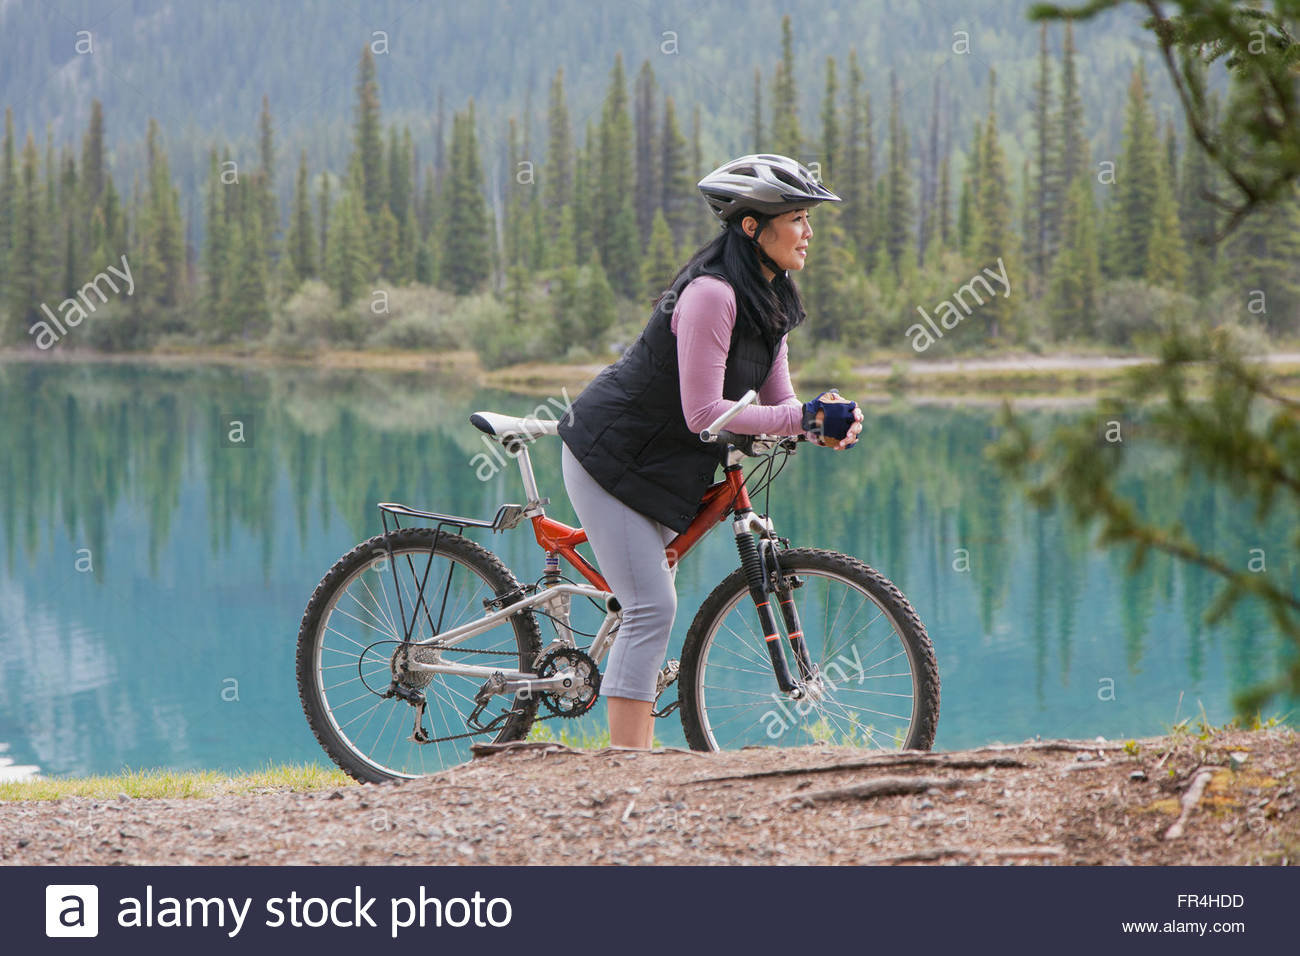 asian woman taking a pause from mountain biking by lake - Stock Image